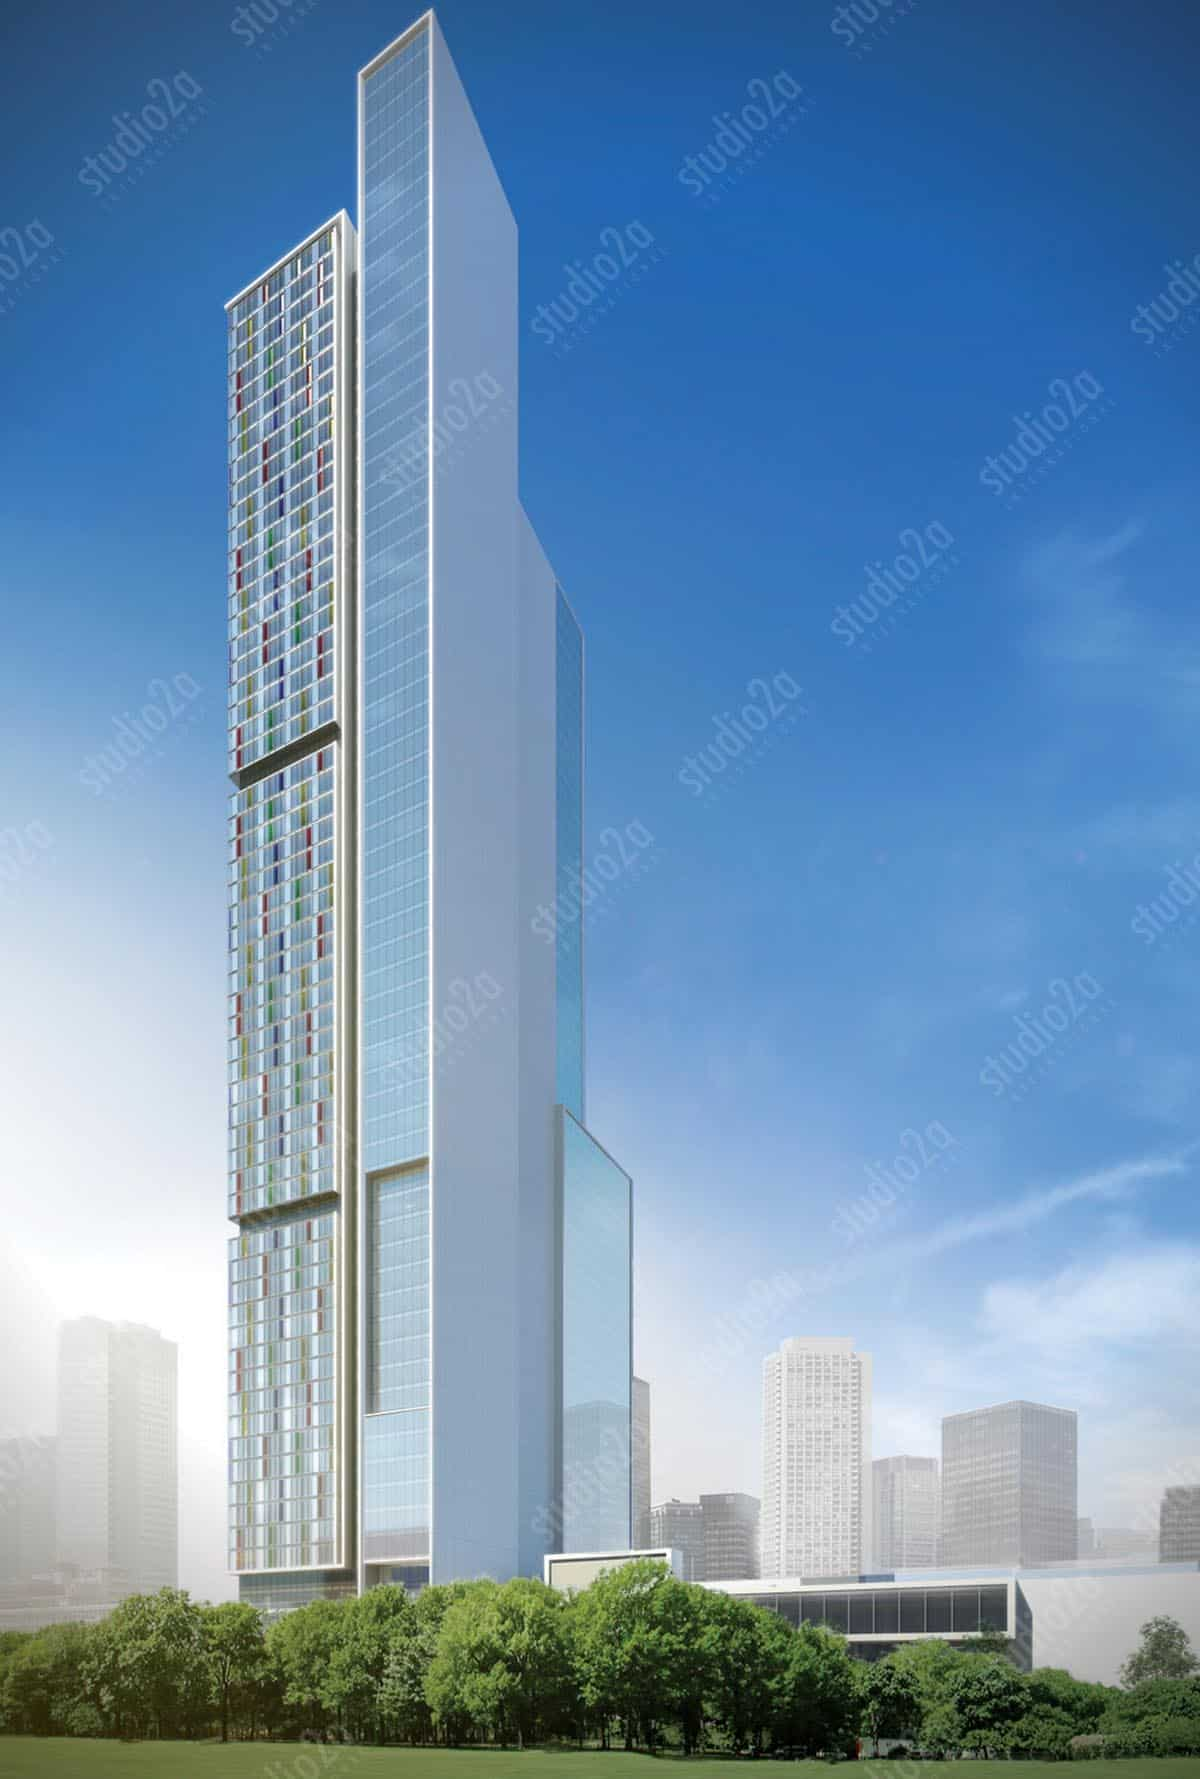 3d concept rendering architectural high-rise NY